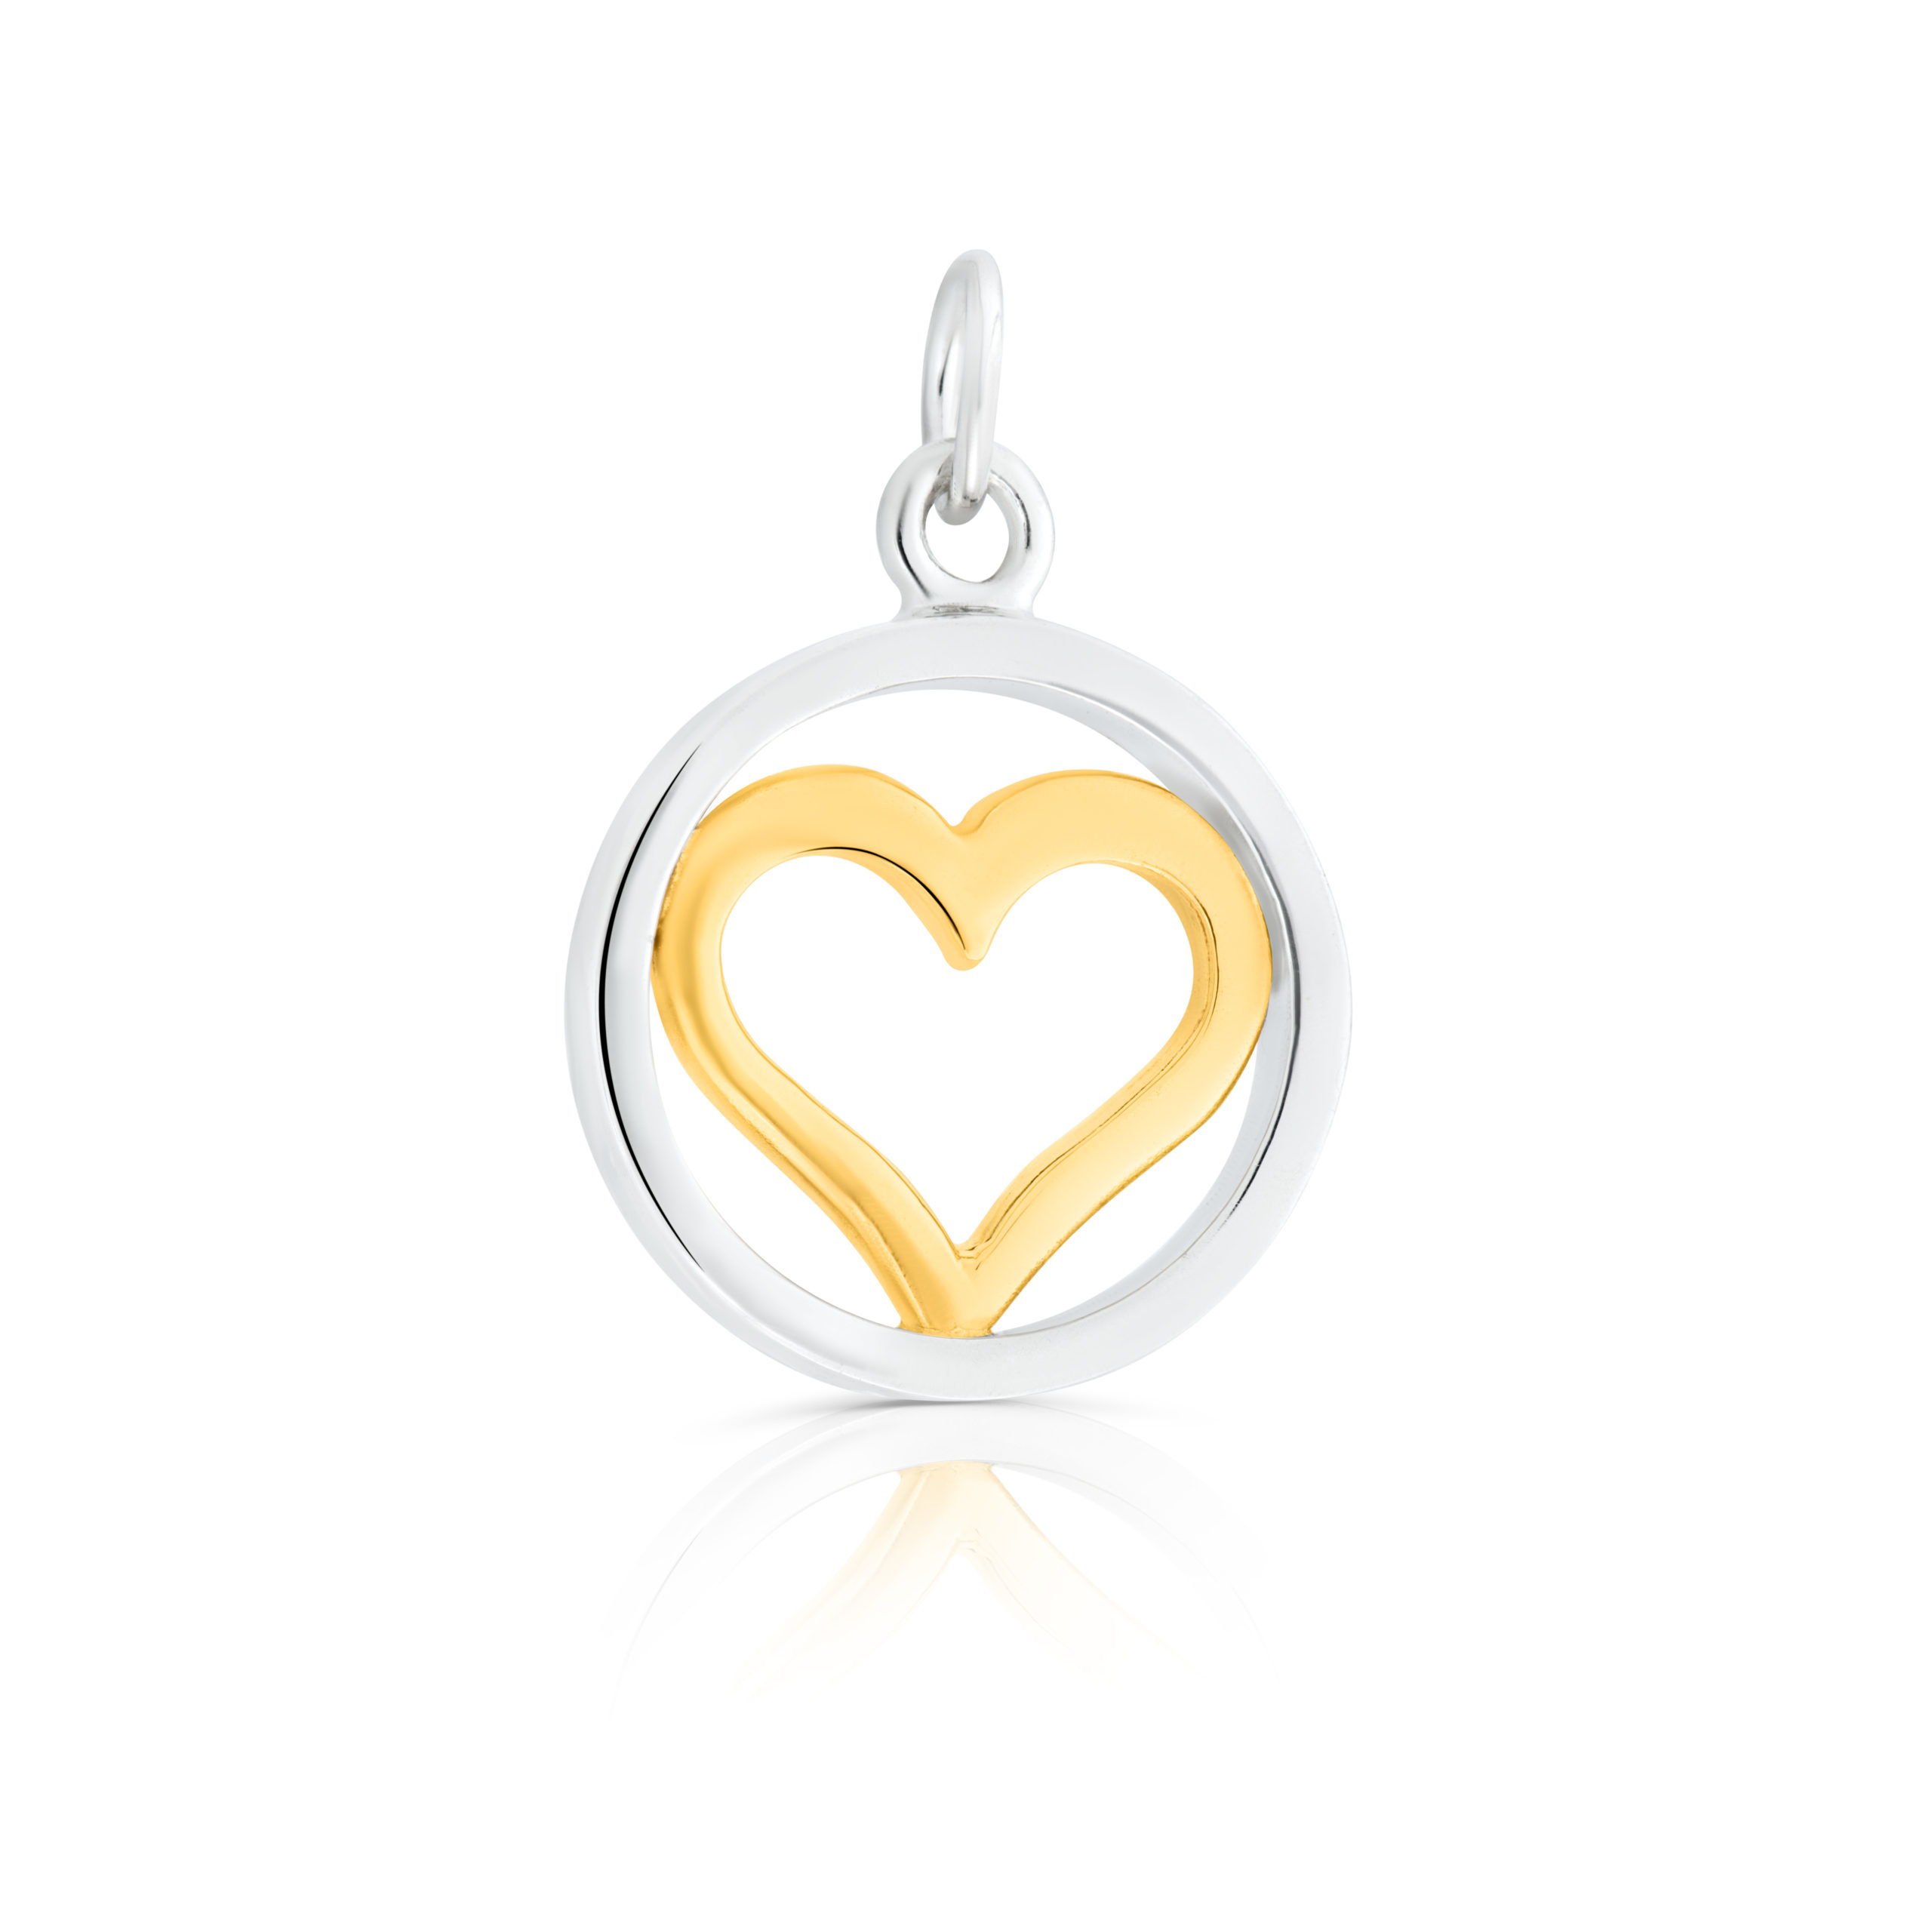 Sterling Silver and 9ct Yellow Gold Charm / Pendant (Live your dreams)